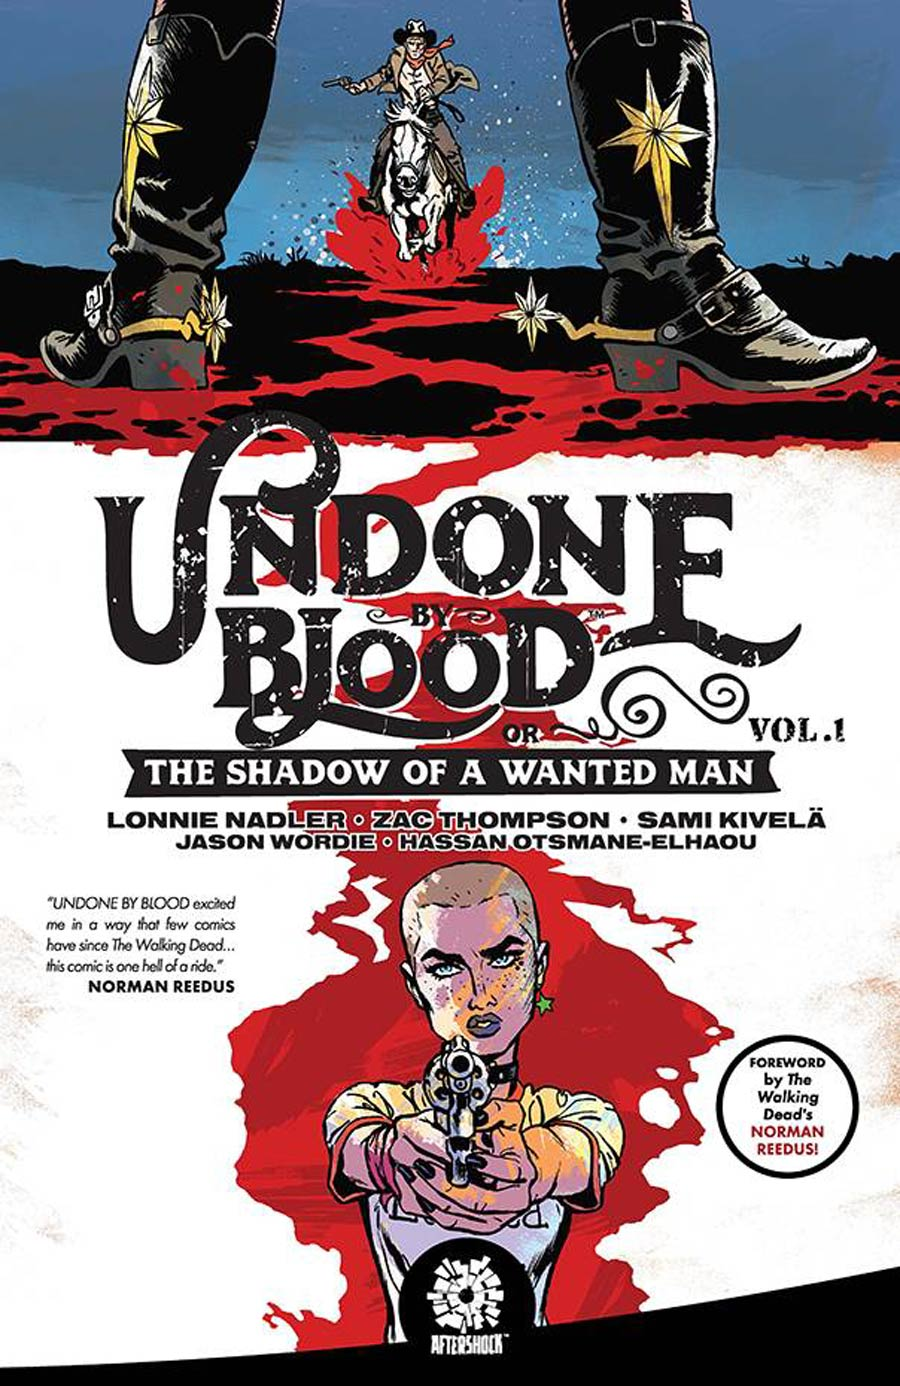 Undone By Blood Or The Shadow Of A Wanted Man Vol 1 TP